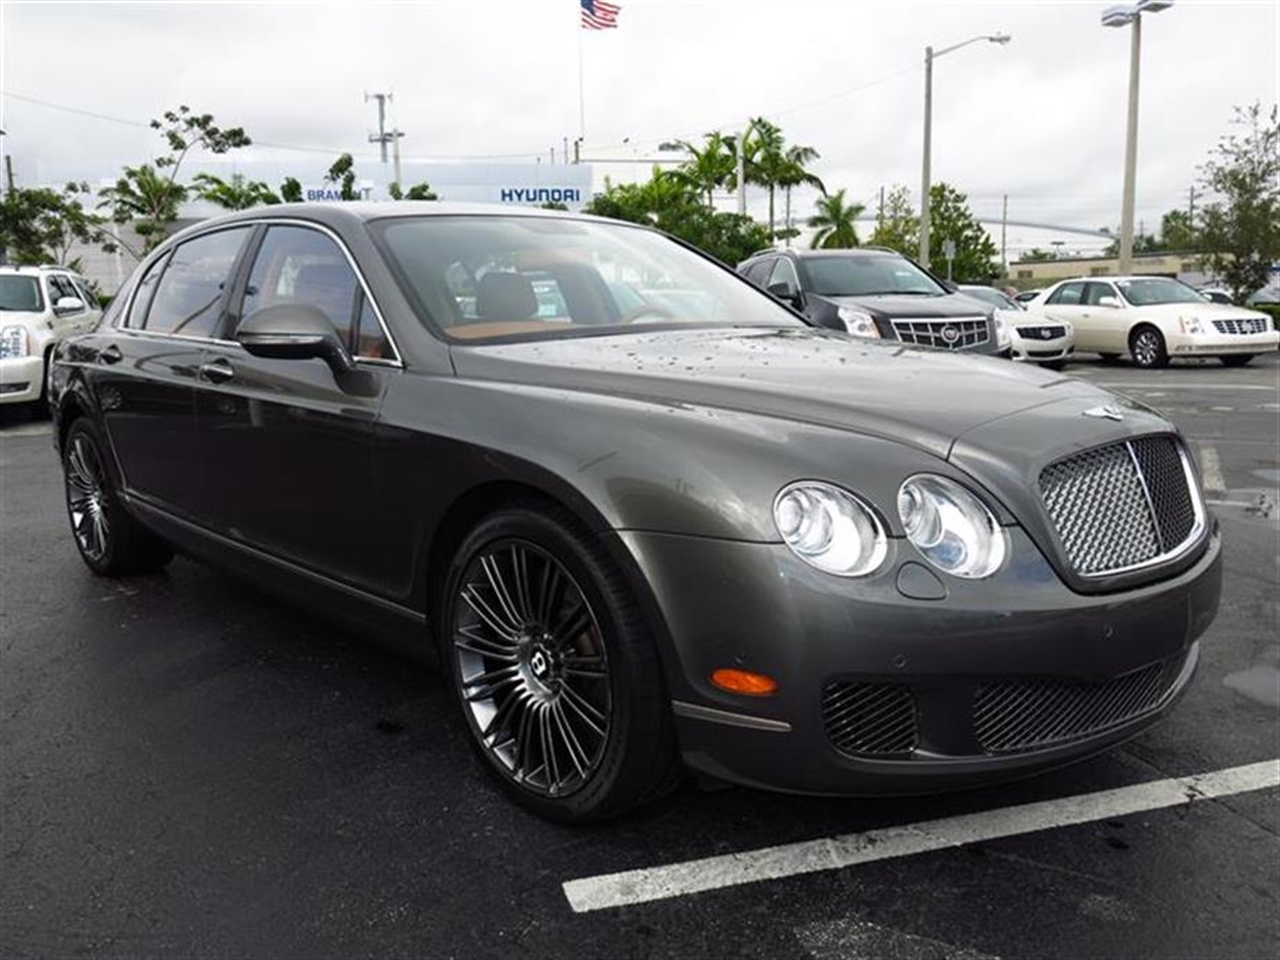 2010 BENTLEY CONTINENTAL FLYING SPUR 4dr Sdn Speed 19797 miles 3-spoke monotone leather trimmed st